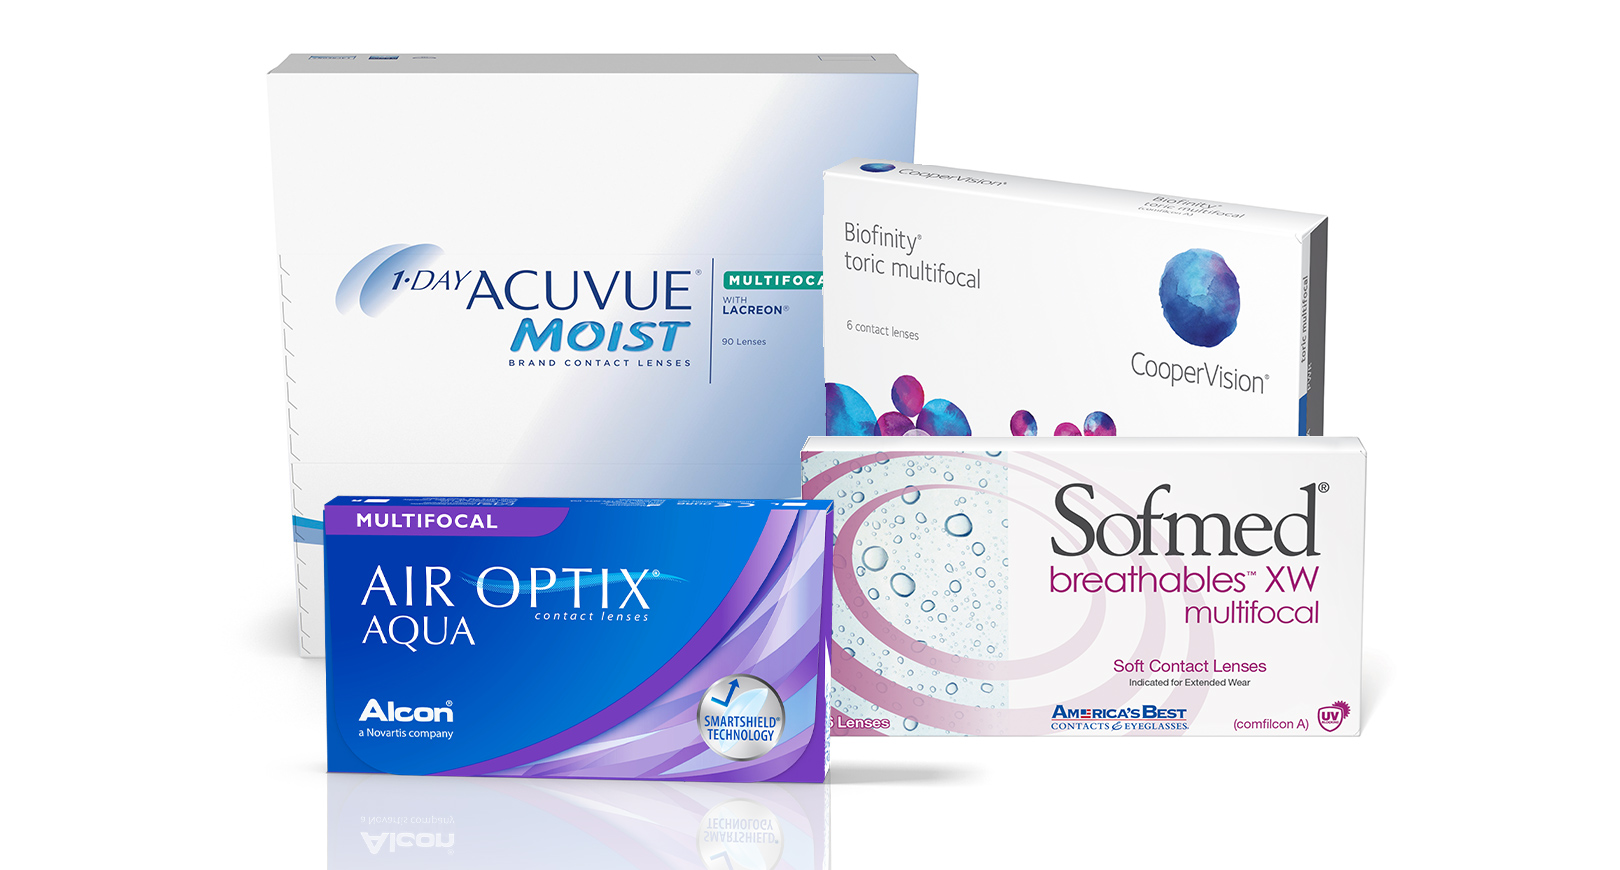 Boxes of multifocal contact lenses